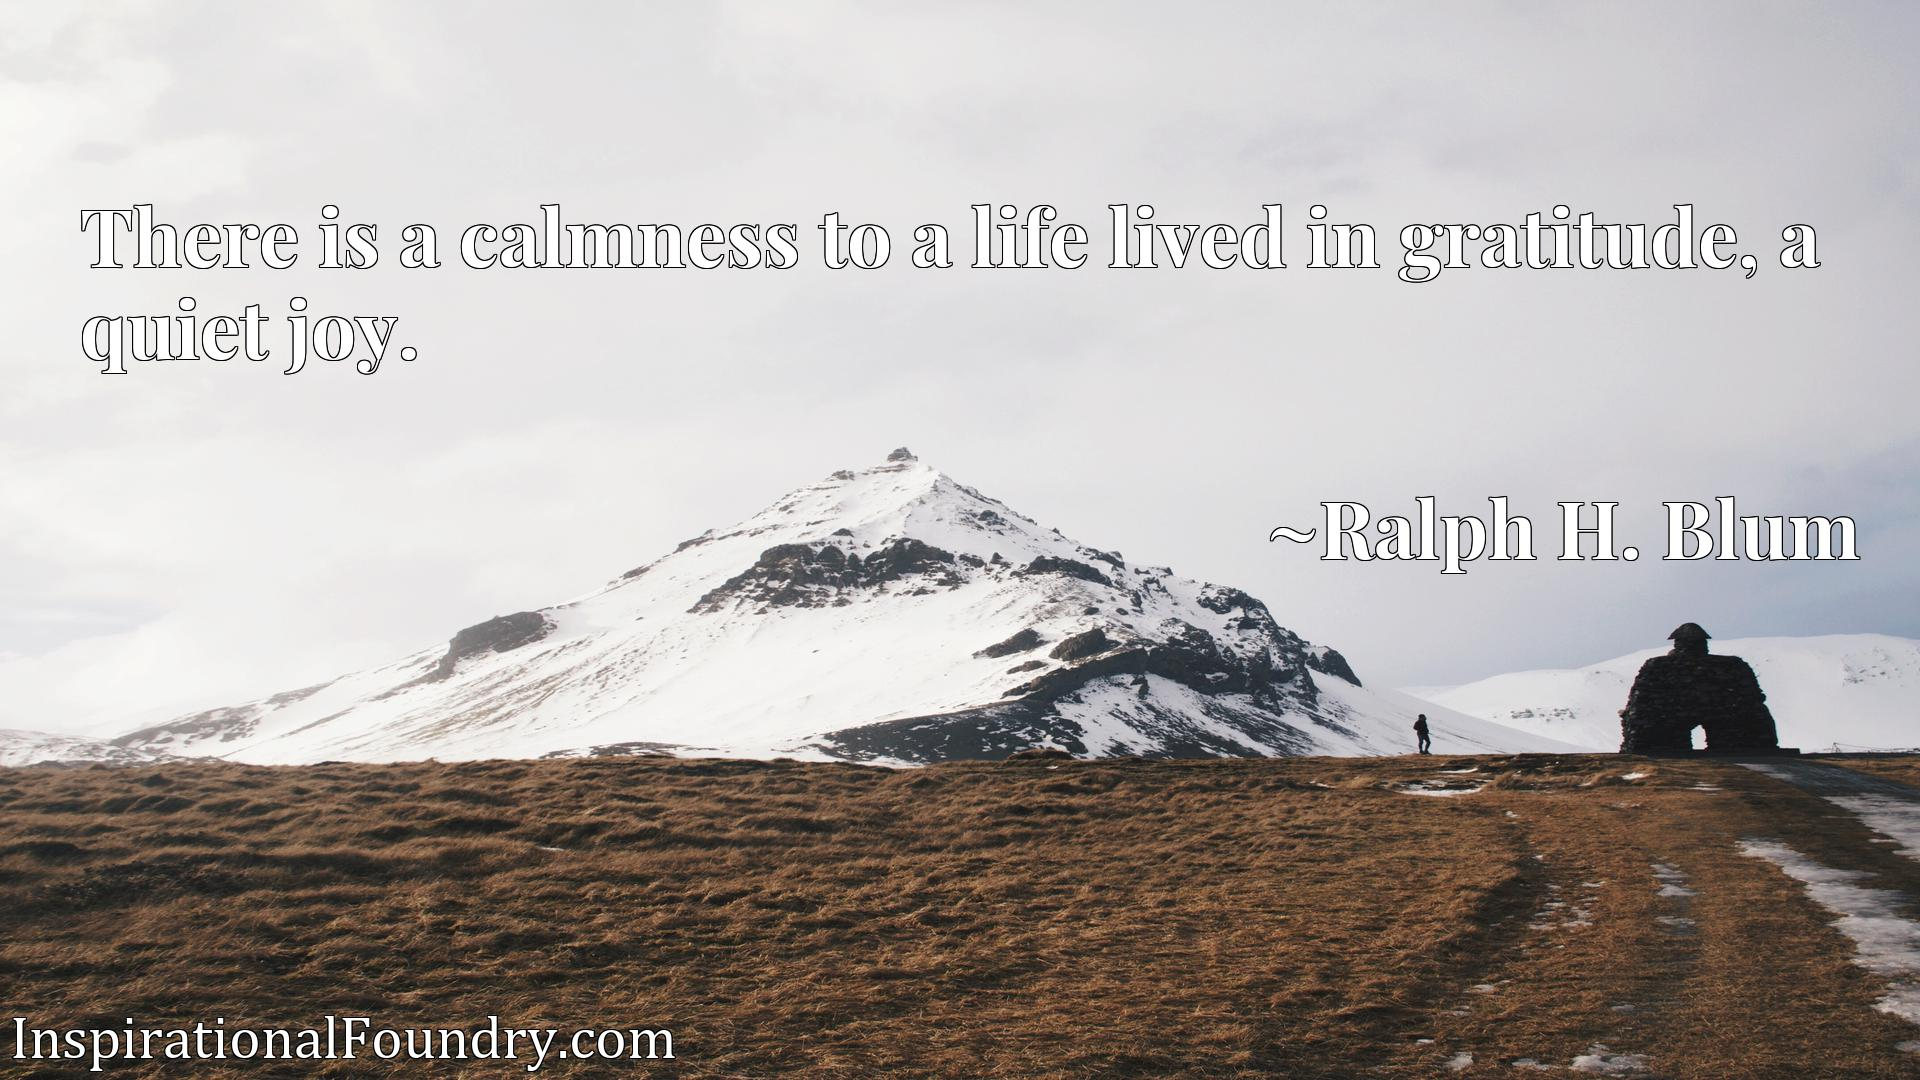 There is a calmness to a life lived in gratitude, a quiet joy.